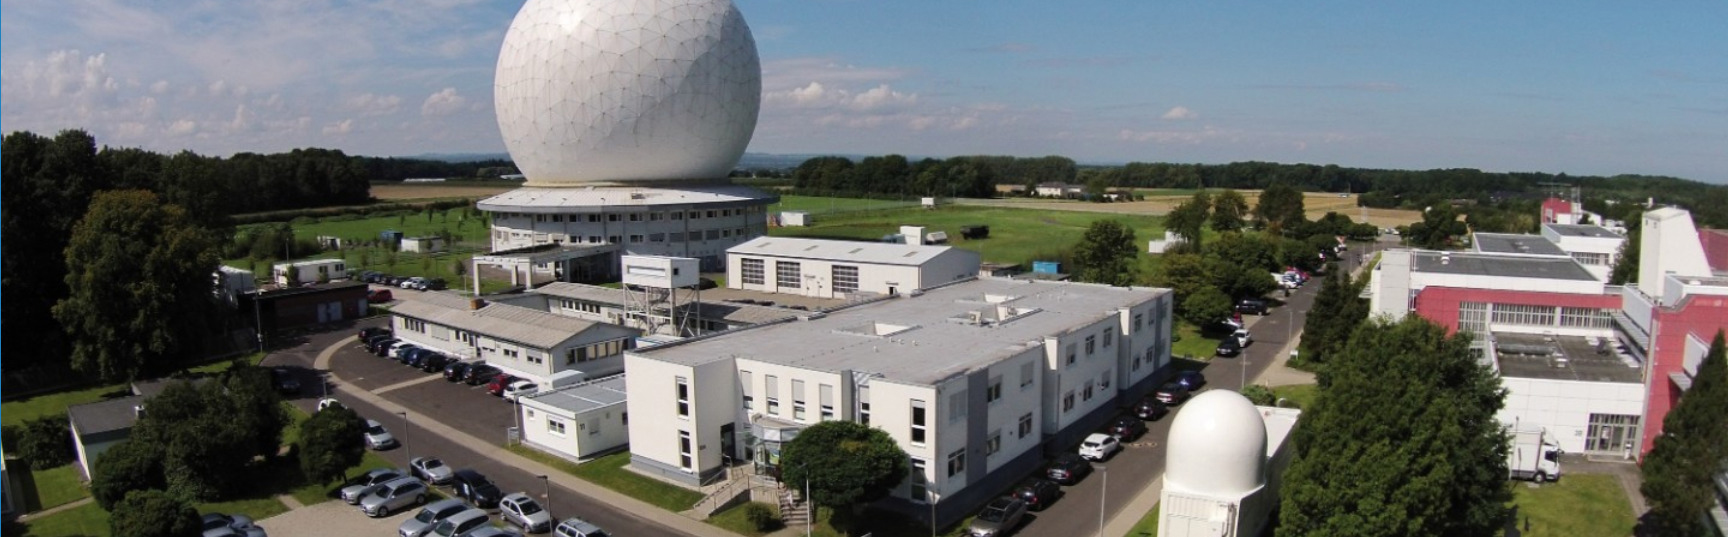 FHR - Fraunhofer Institute for High Frequency Physics and Radar Techniques